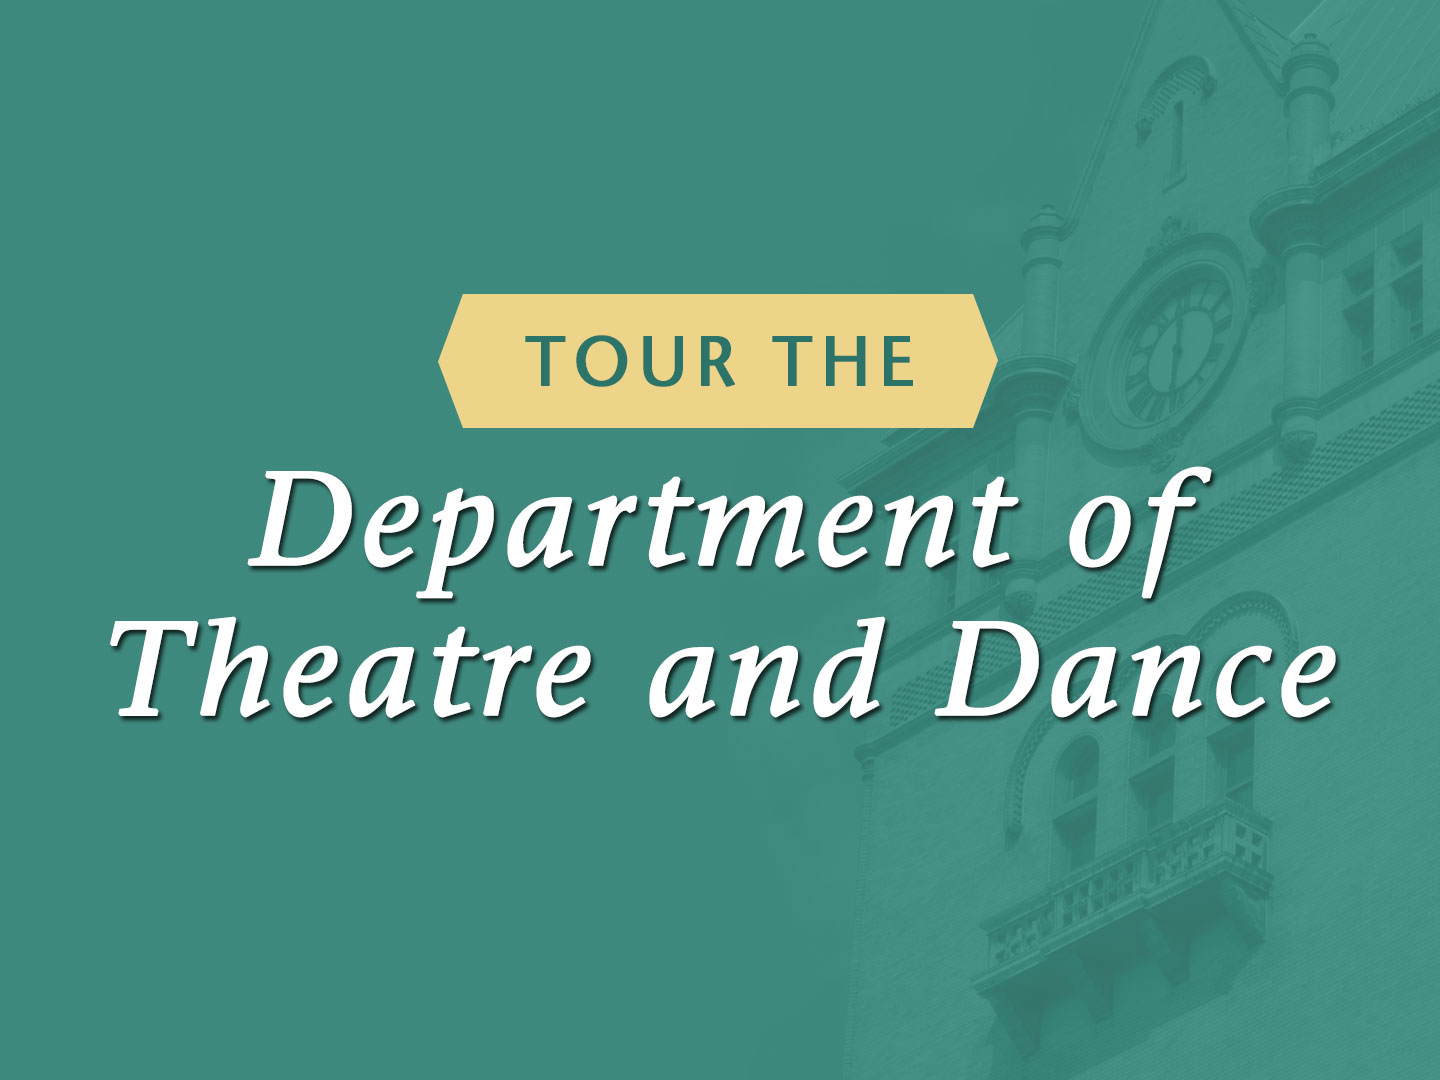 Wayne State University College of Fine and Performing Arts tour the Department of Theatre and Dance